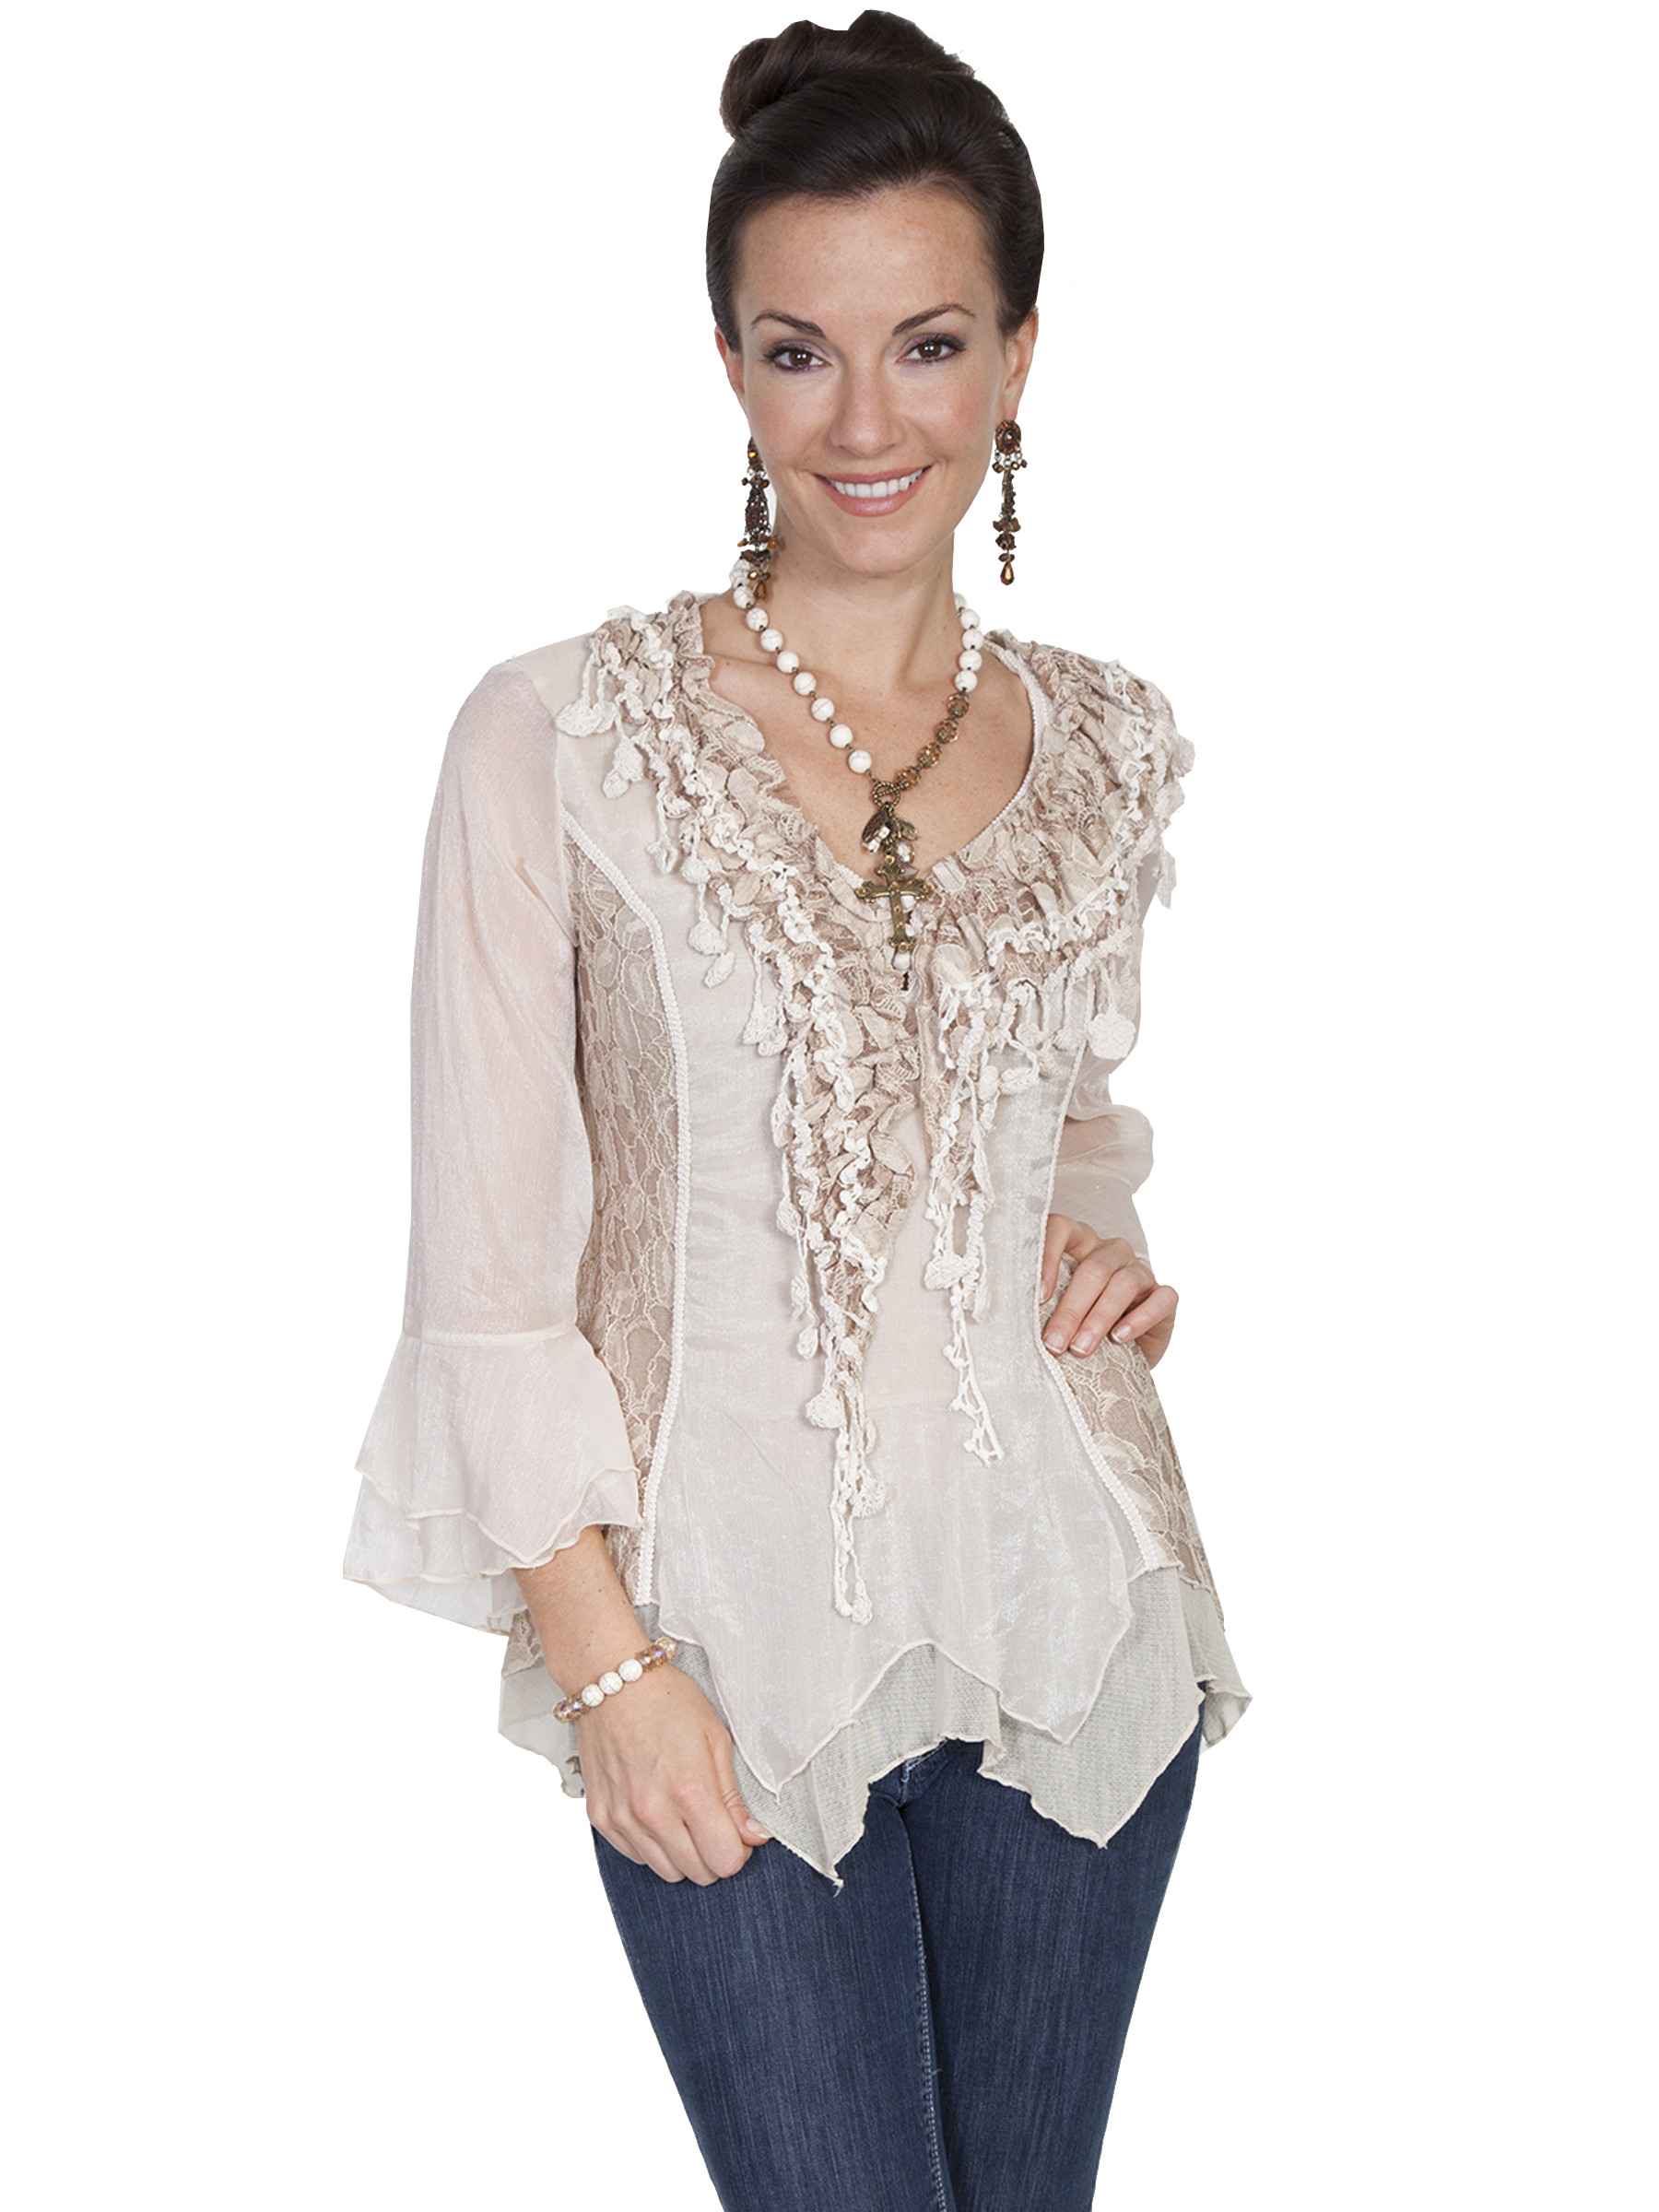 Shop Ariat Women's Western T-Shirts and Polos here on cuttackfirstboutique.cf Ariat creates Polos and T-Shirts with the Western Rider in mind to ensure a proper fit and great functionality. Shop the entire collection of Women's T-Shirts and Polos in Western Styling on cuttackfirstboutique.cf today.